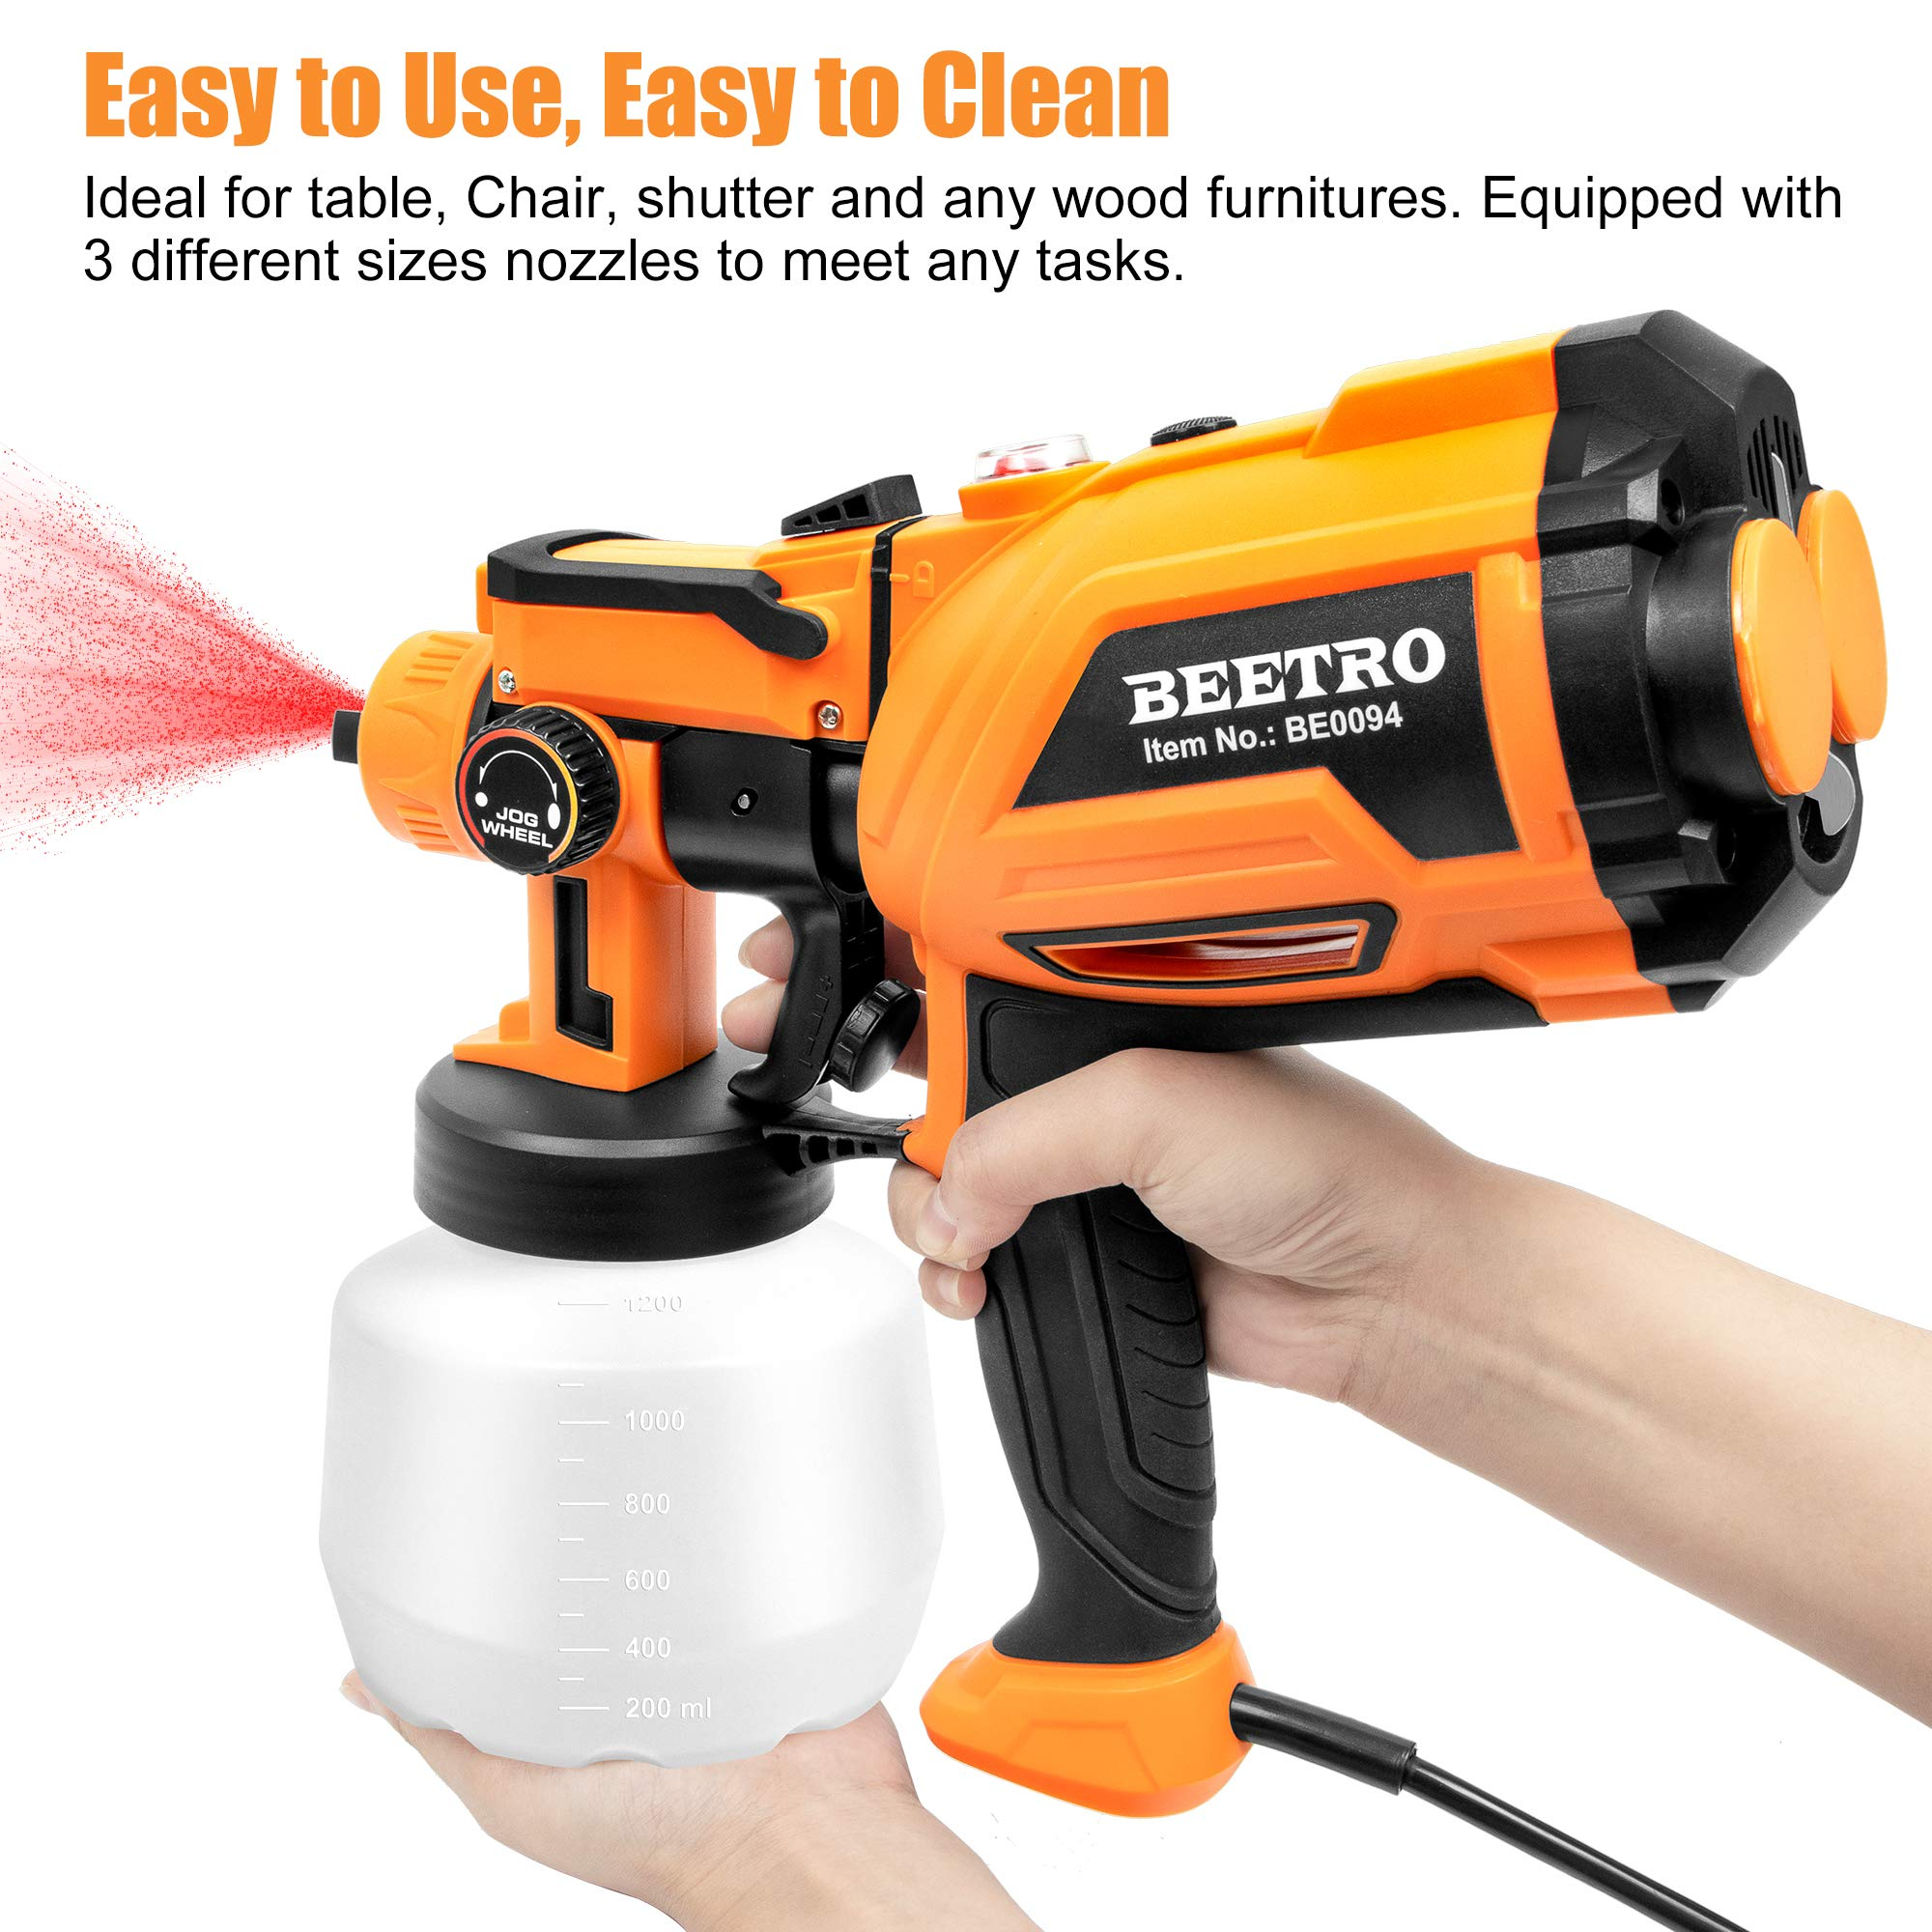 BEETRO Paint Spray Gun 550W High Power 450ml/min with 3 Premium Copper Nozzles and 20pcs 190 Micron Paint Strainers, 1200ml Container HVLP Electric Sprayer for Home Easy Spraying and Cleaning